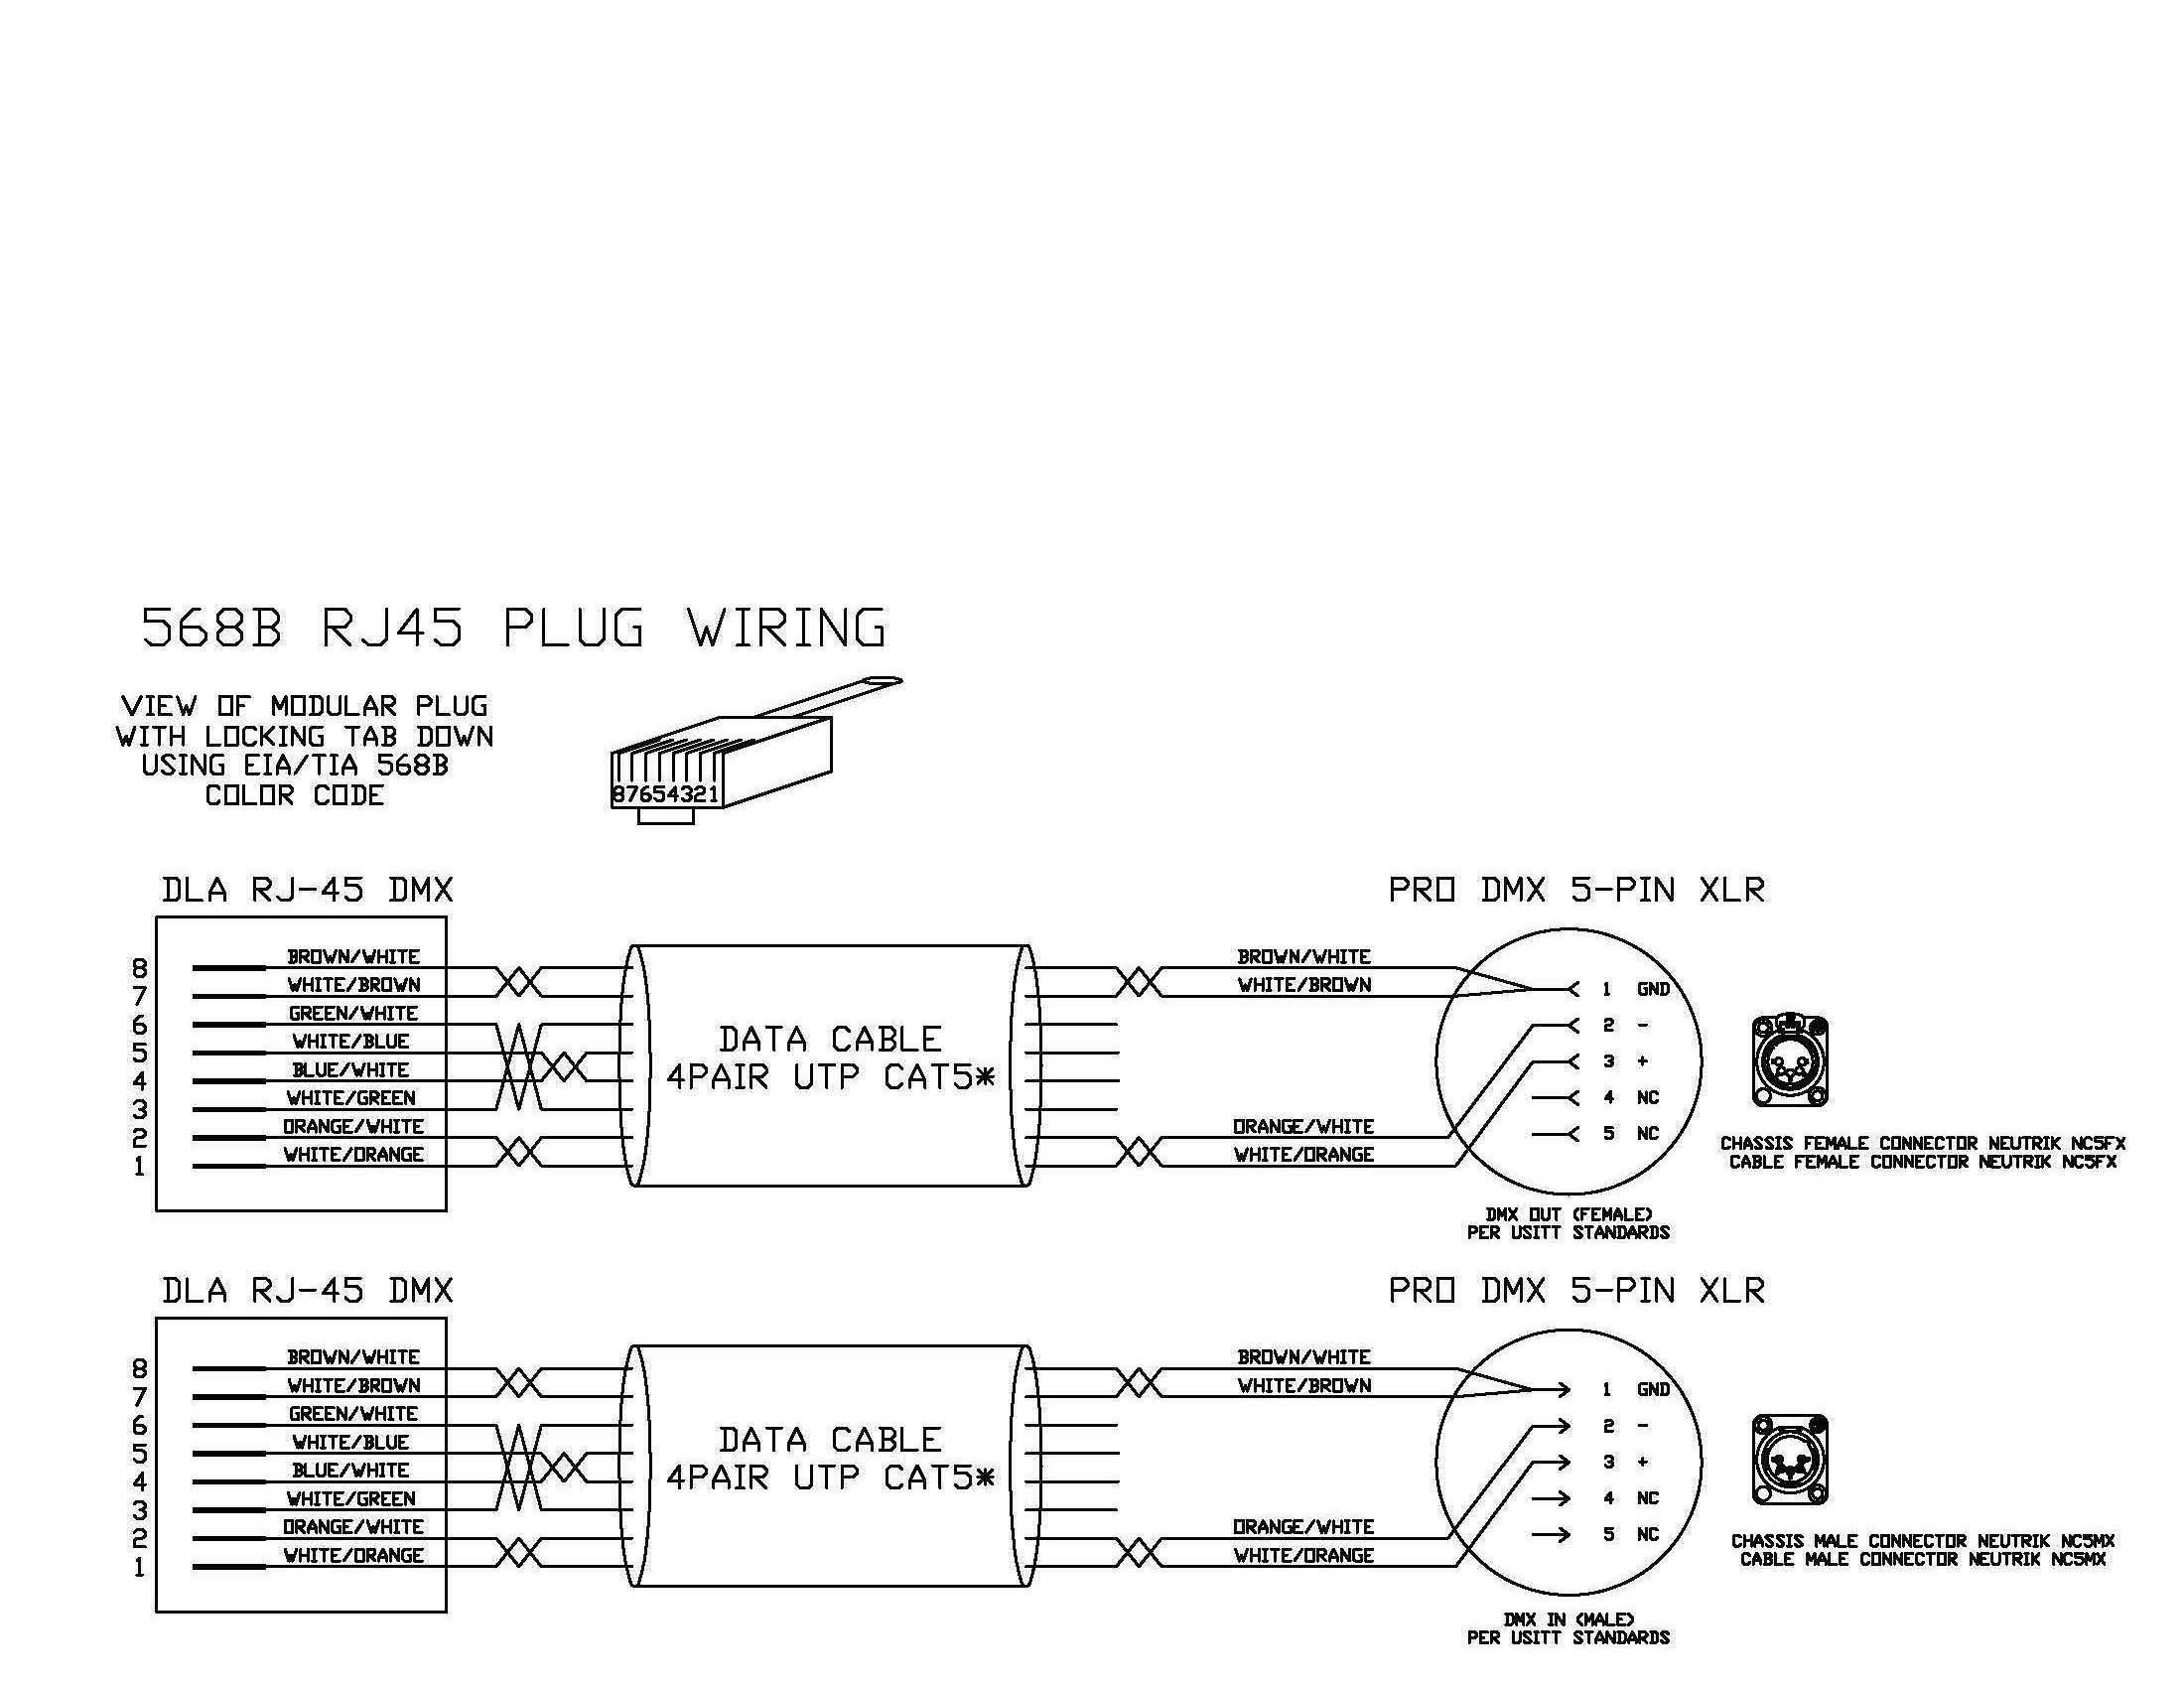 e975ddb6a839e630c21b81db05ca4fa6 xlr to rj45 wiring diagram xlr electrical wiring diagrams xlr wiring diagram at readyjetset.co